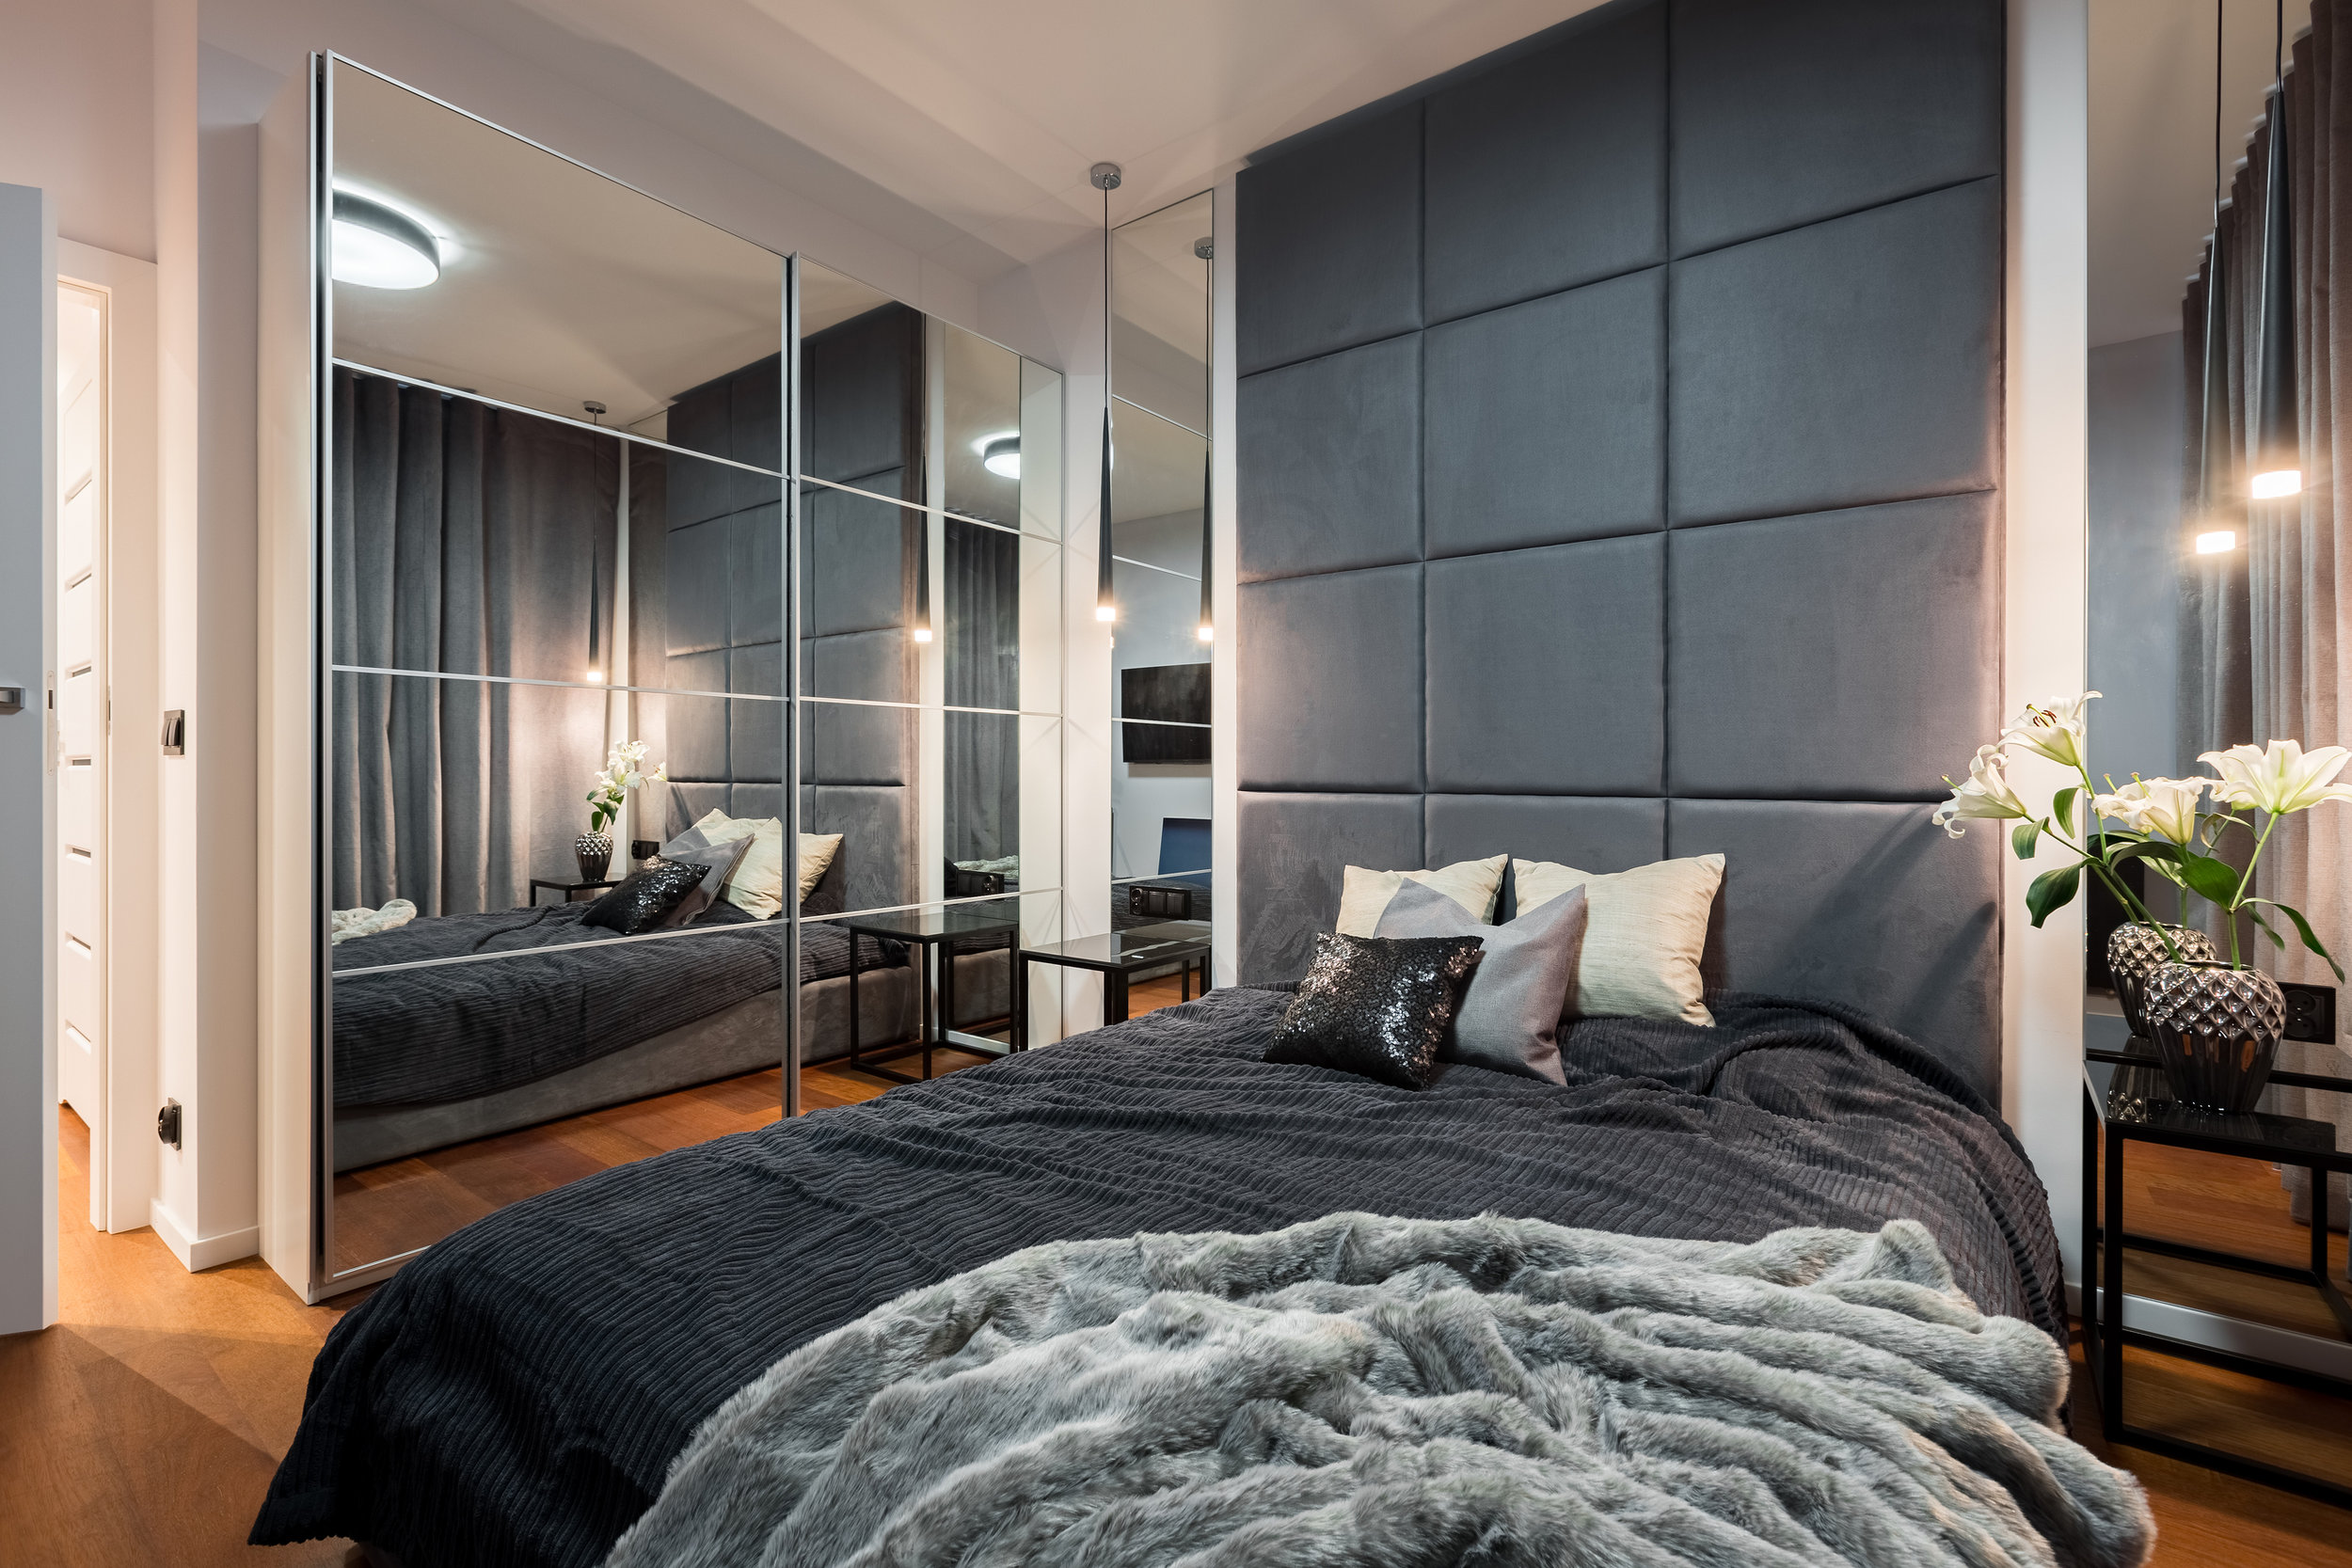 bigstock-Sophisticated-Bedroom-With-Dou-212342272.jpg